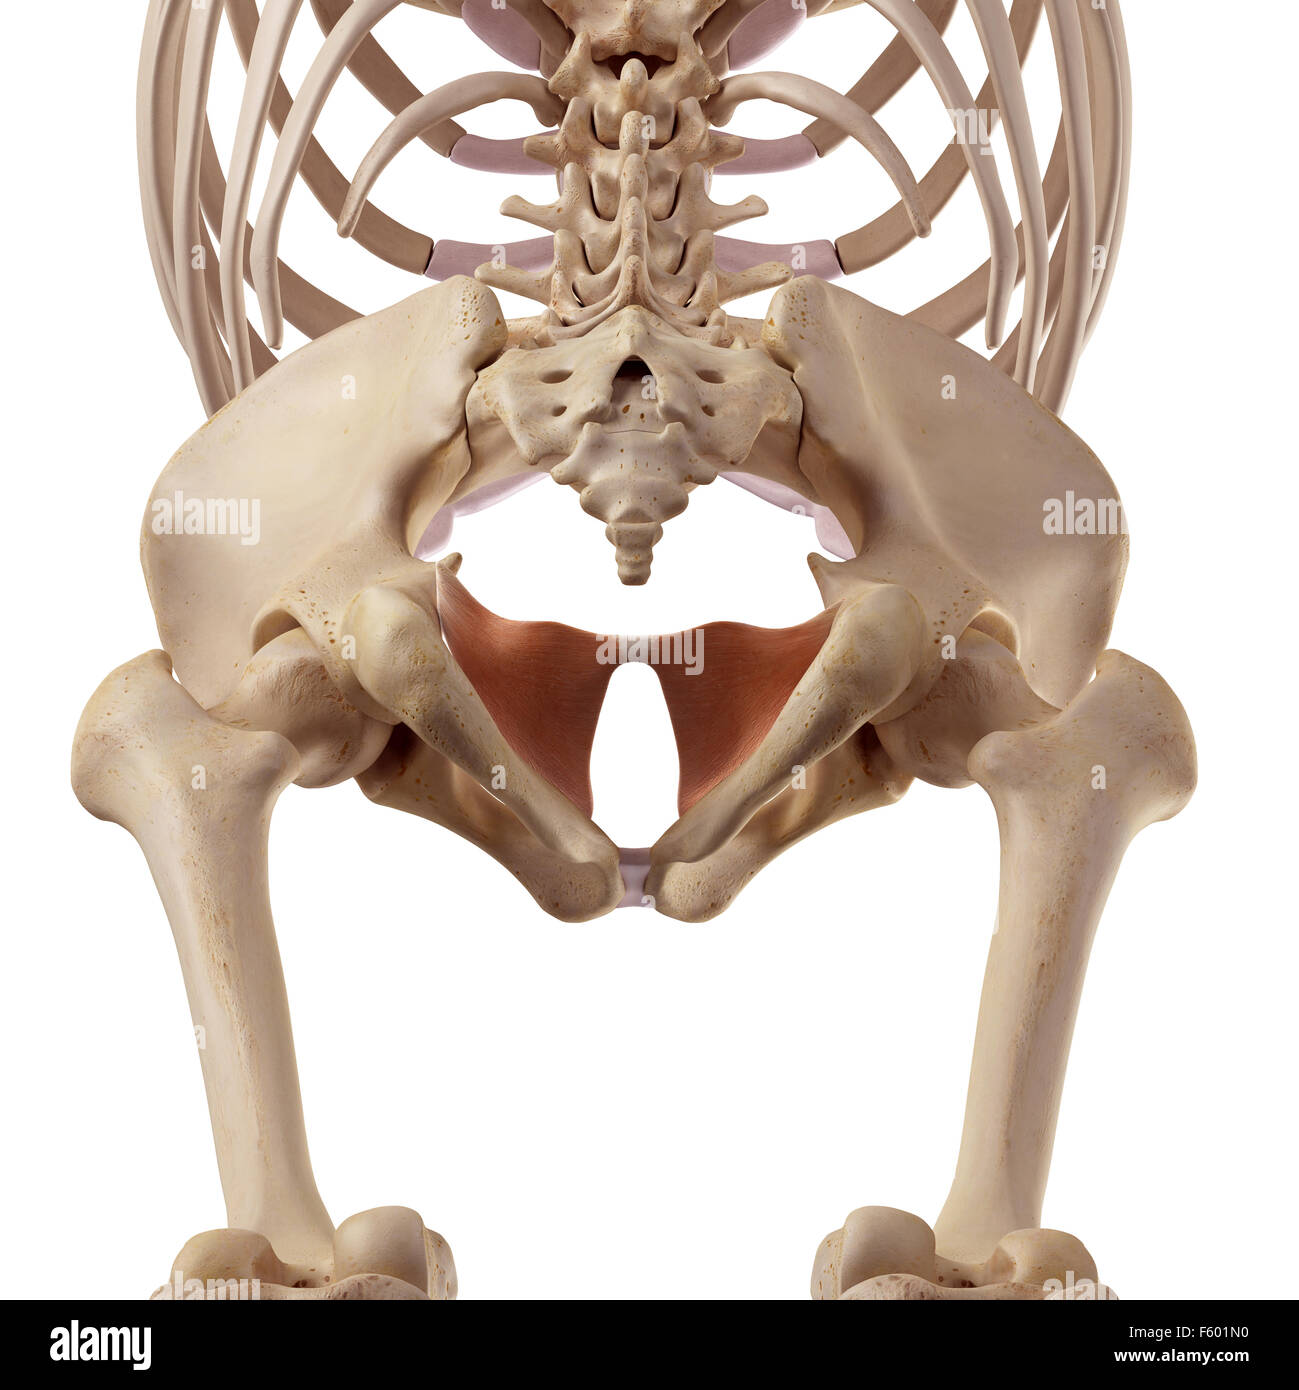 medical accurate illustration of the coccygeus - Stock Image